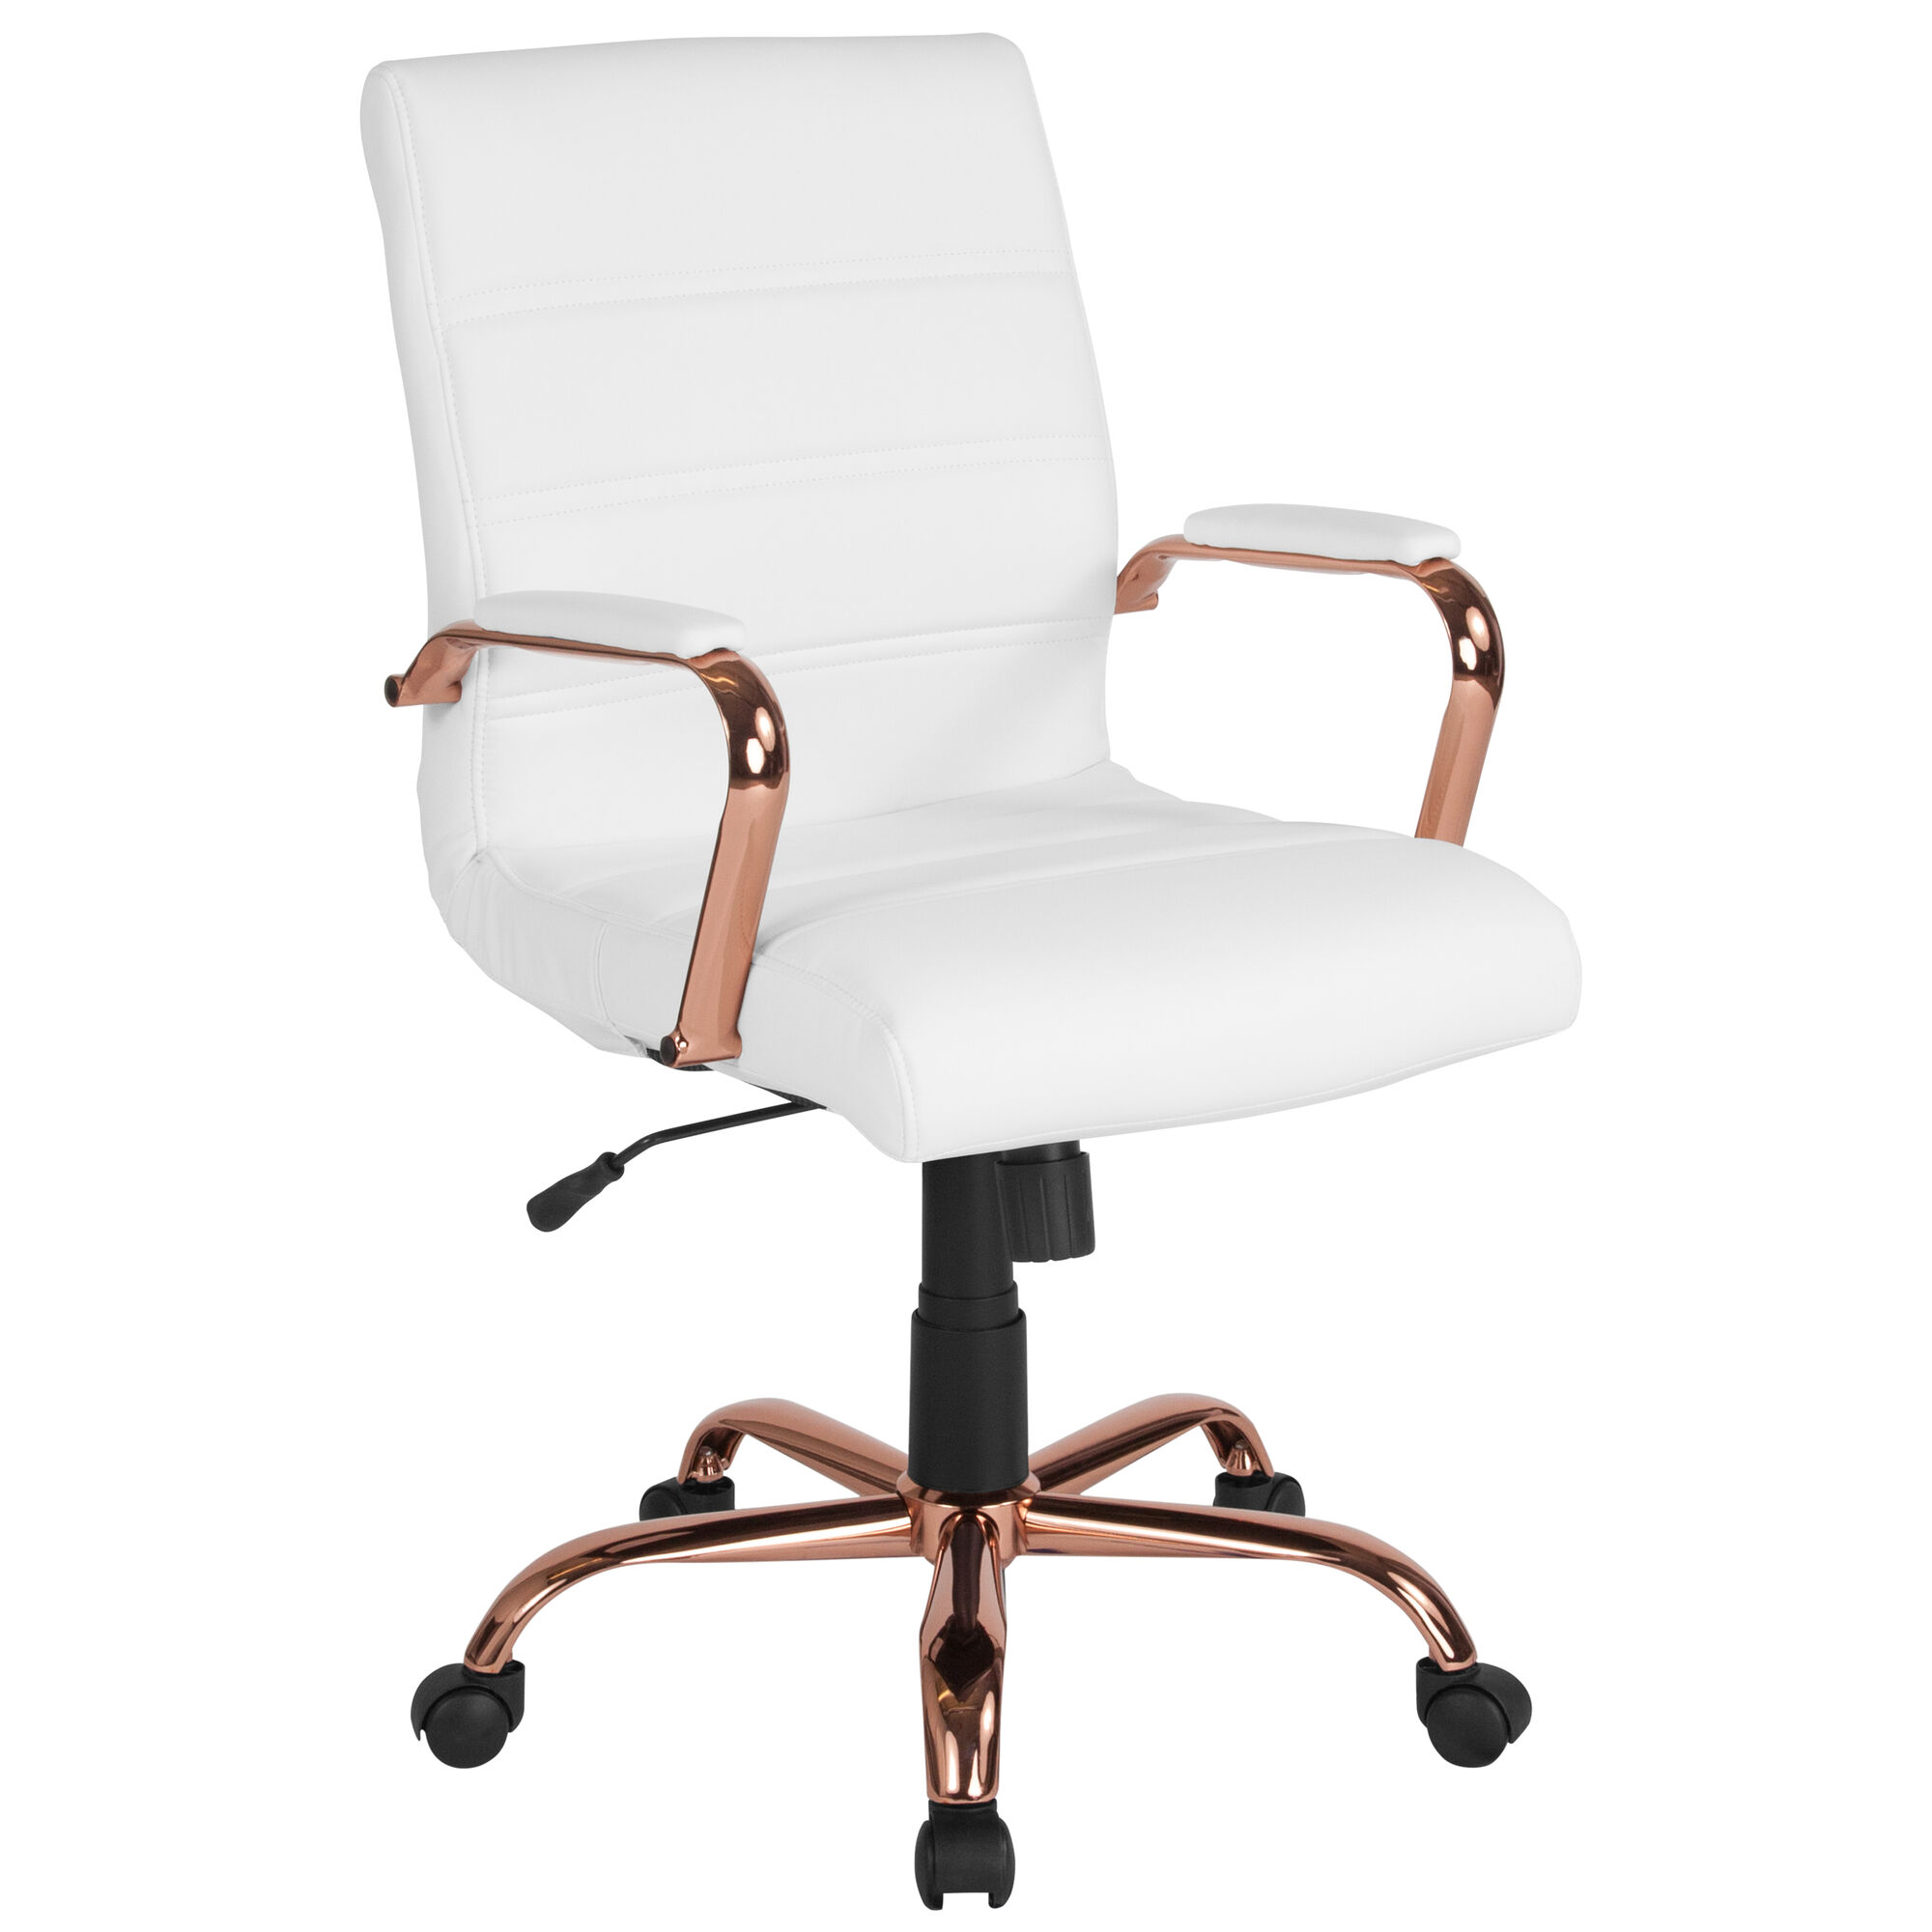 Awe Inspiring Mid Back White Leather Executive Swivel Office Chair With Rose Gold Frame And Arms Pdpeps Interior Chair Design Pdpepsorg